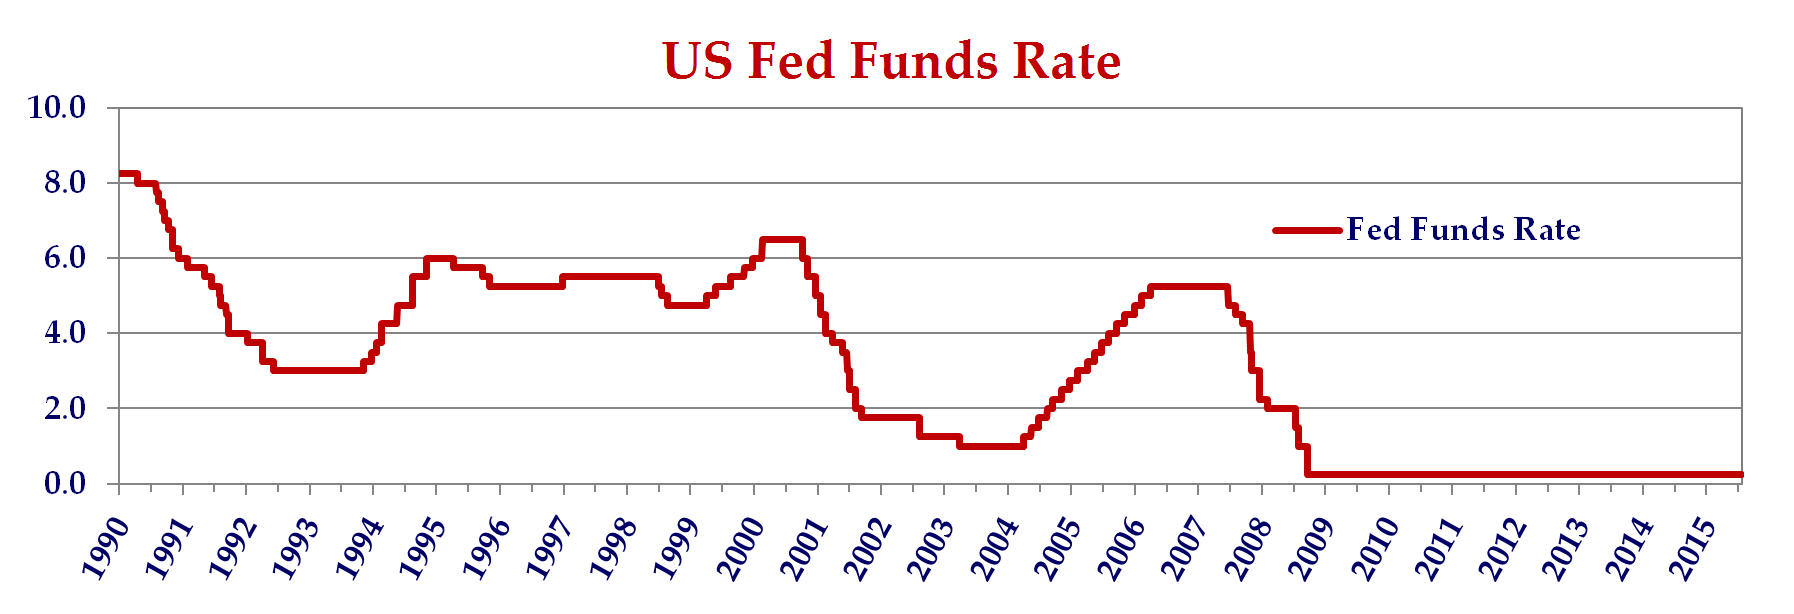 this line graph shows the United States fed fund rates from 1990 to 2016.